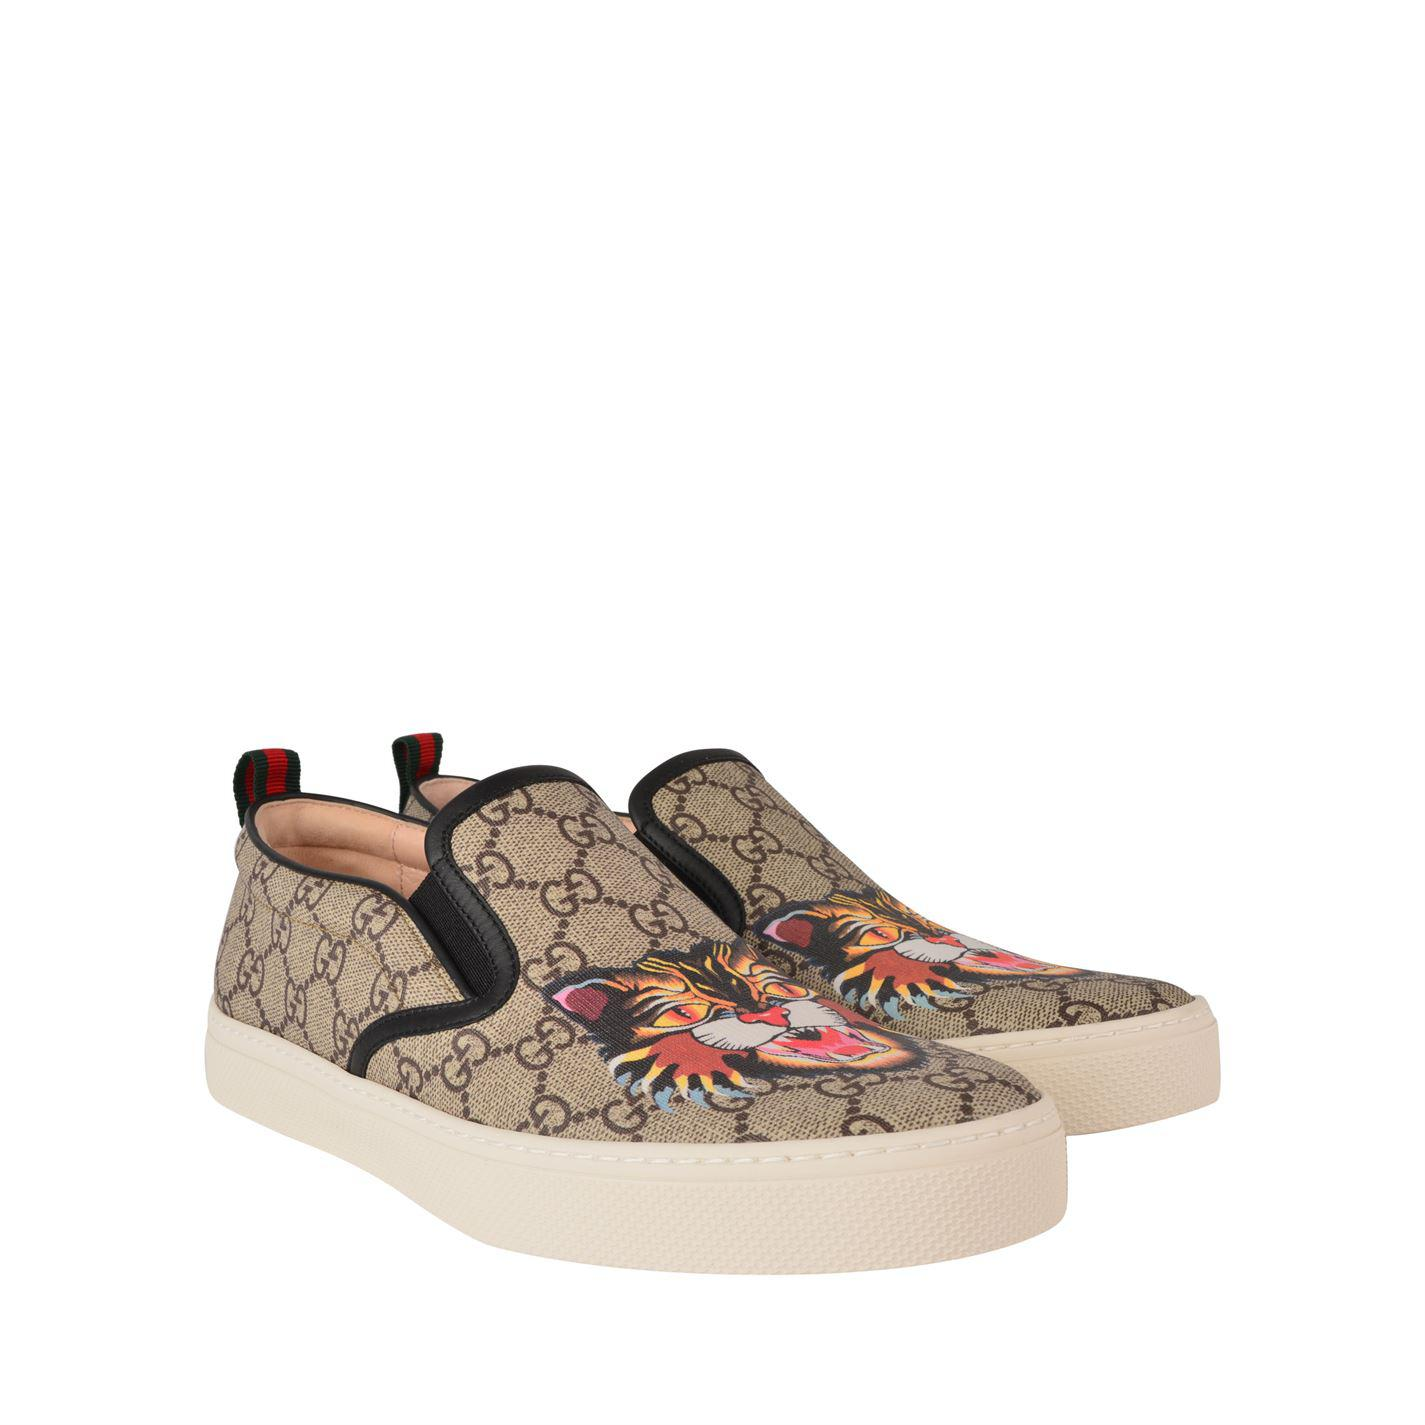 Gucci Leather Dublin Gg Angry Cat